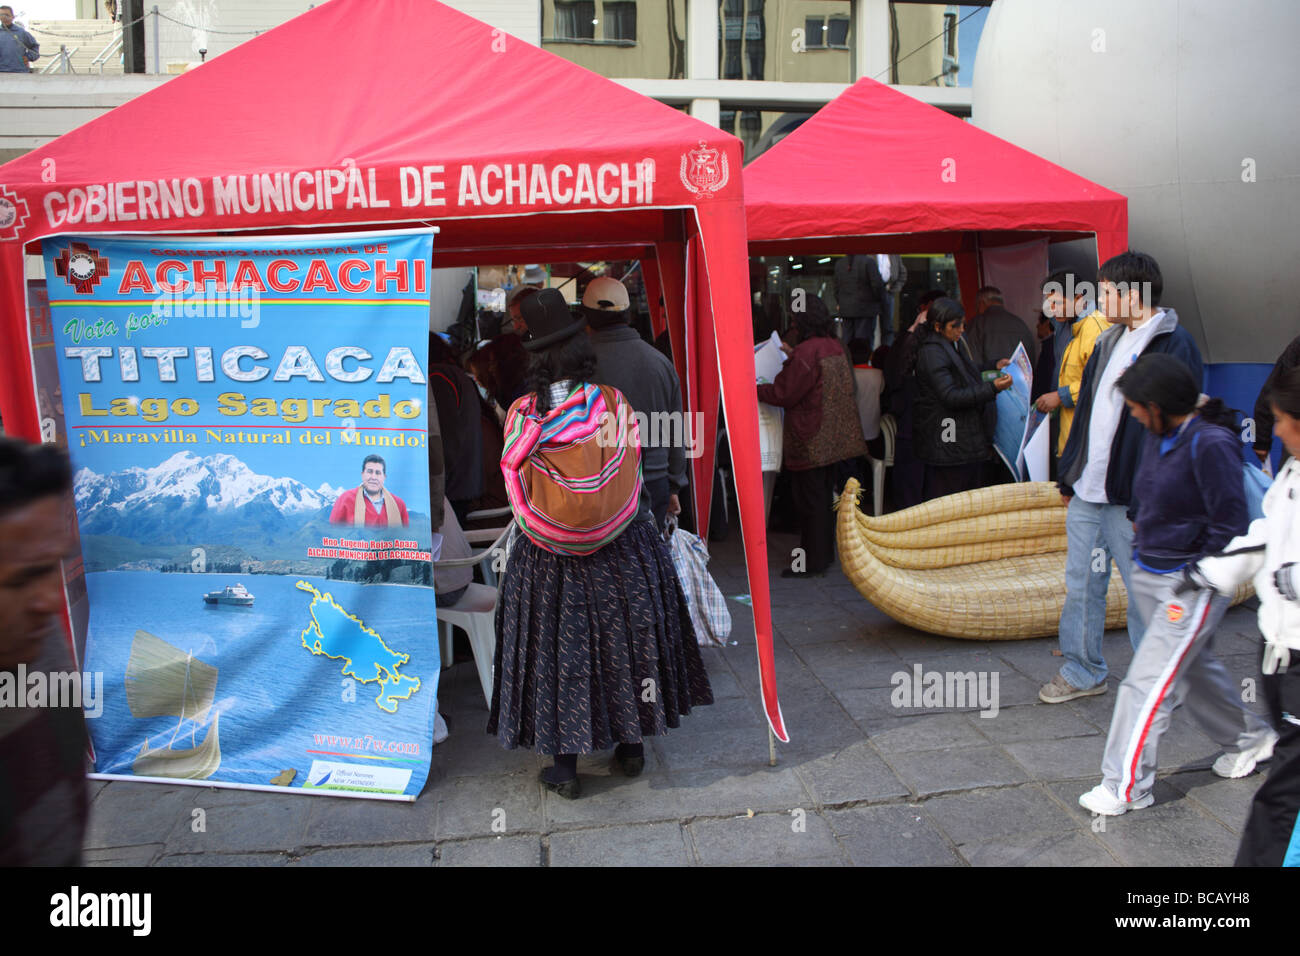 Stall to encourage people to vote for Lake Titicaca as one of The Seven Natural Wonders of the World, La Paz, Bolivia - Stock Image